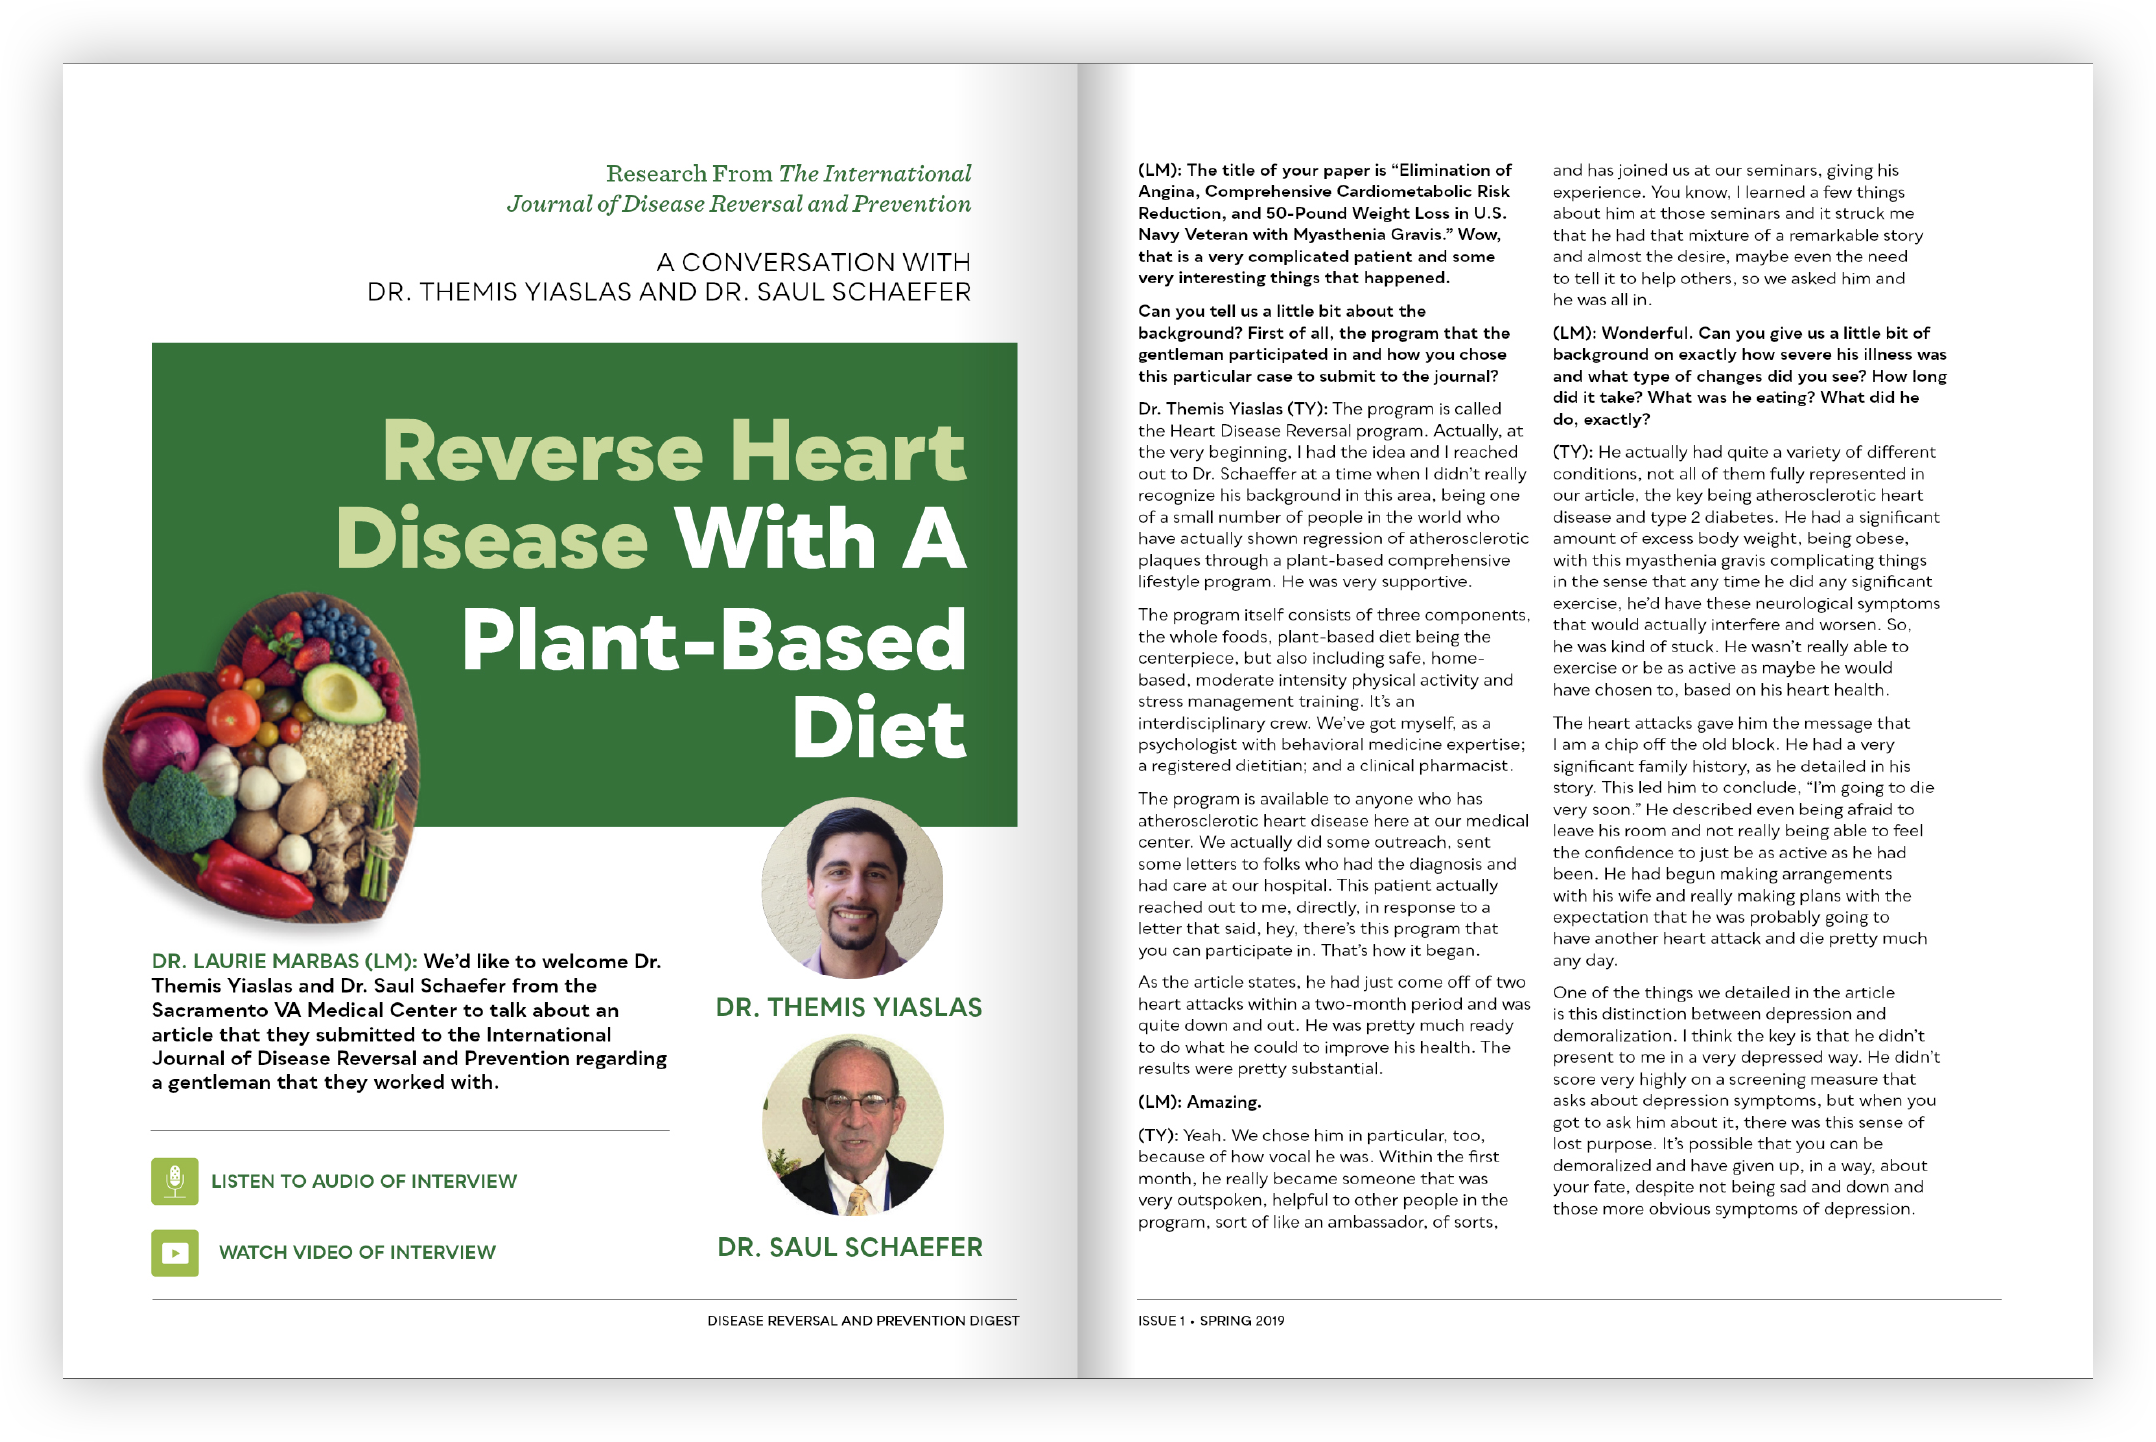 Reverse Heart Disease with a Plant-Based Diet - Themis Yiaslas